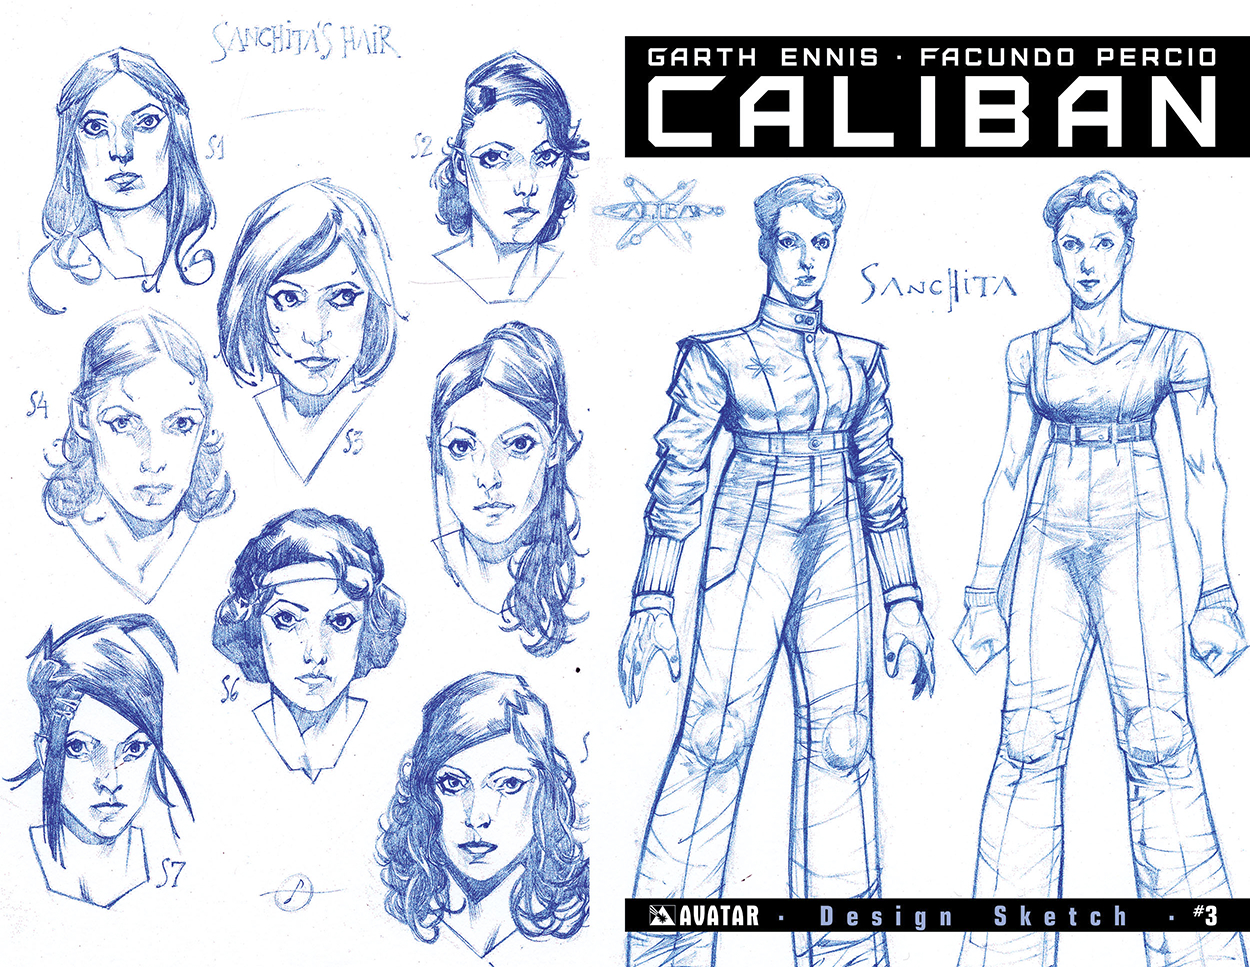 CALIBAN #3 DESIGN SKETCH ORDER INCV